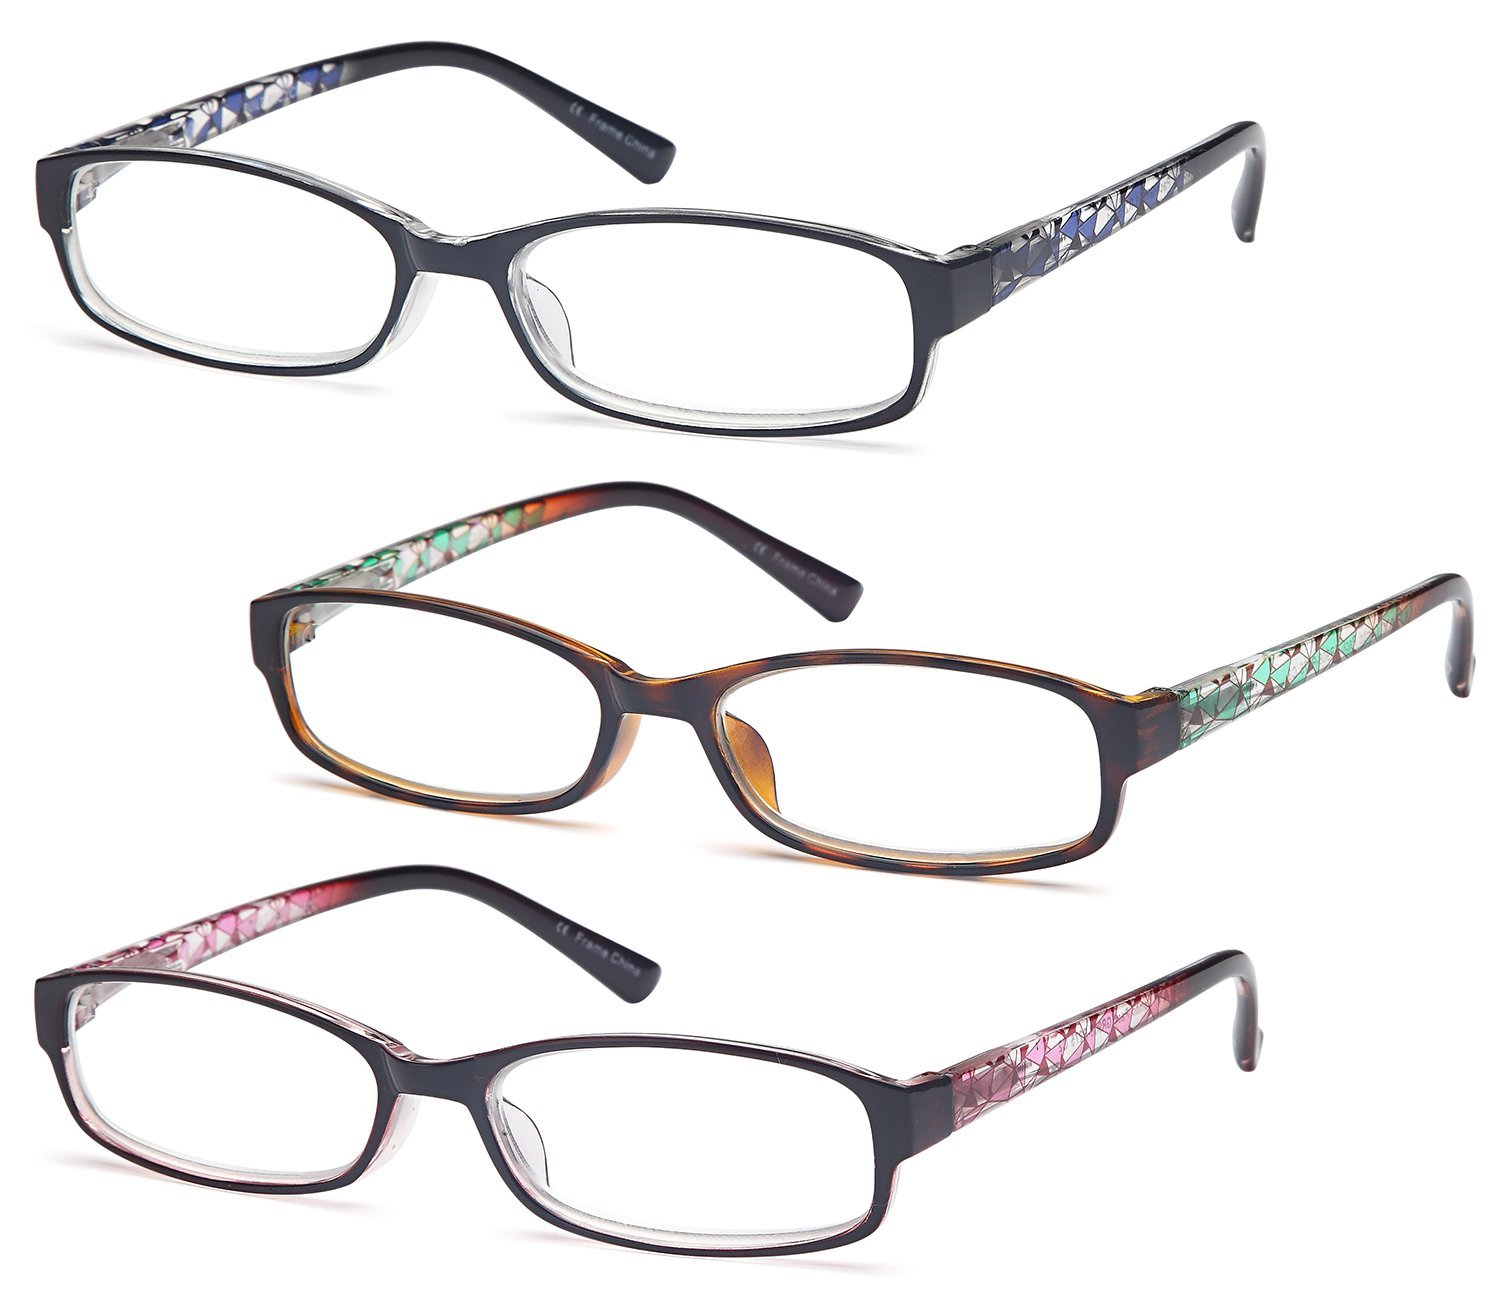 f92b0ba519f1 GAMMA RAY Readers 3 Pack of Thin and Elegant Womens Reading Glasses with  Beautiful Patterns for Ladies